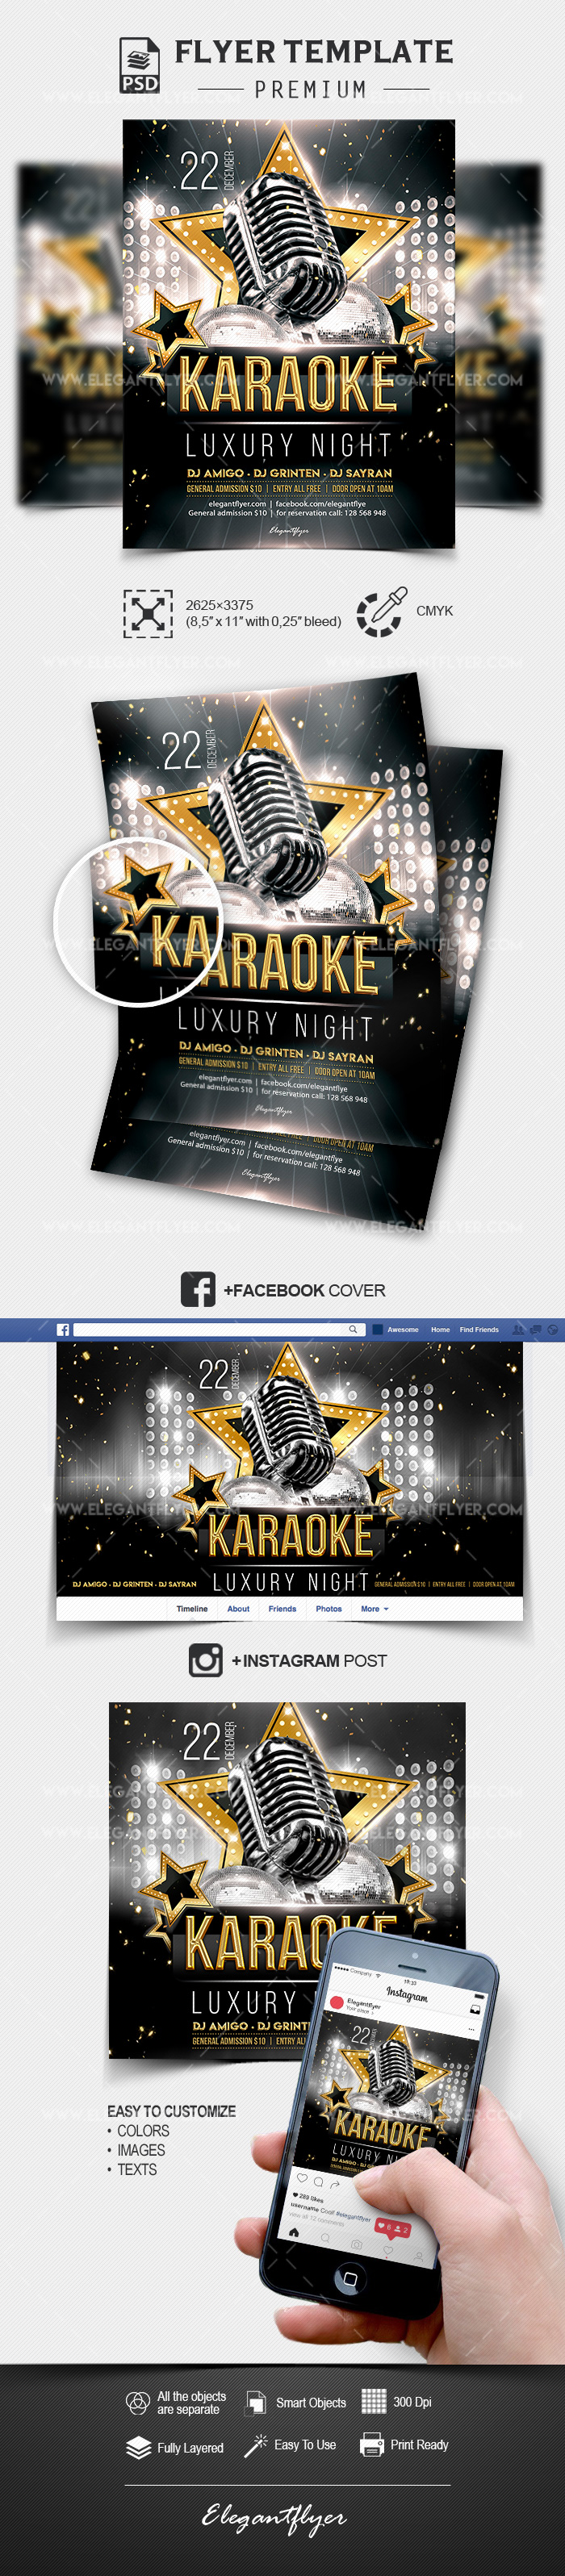 Luxury Karaoke Night – PSD Flyer Template + Facebook Cover + Instagram Post